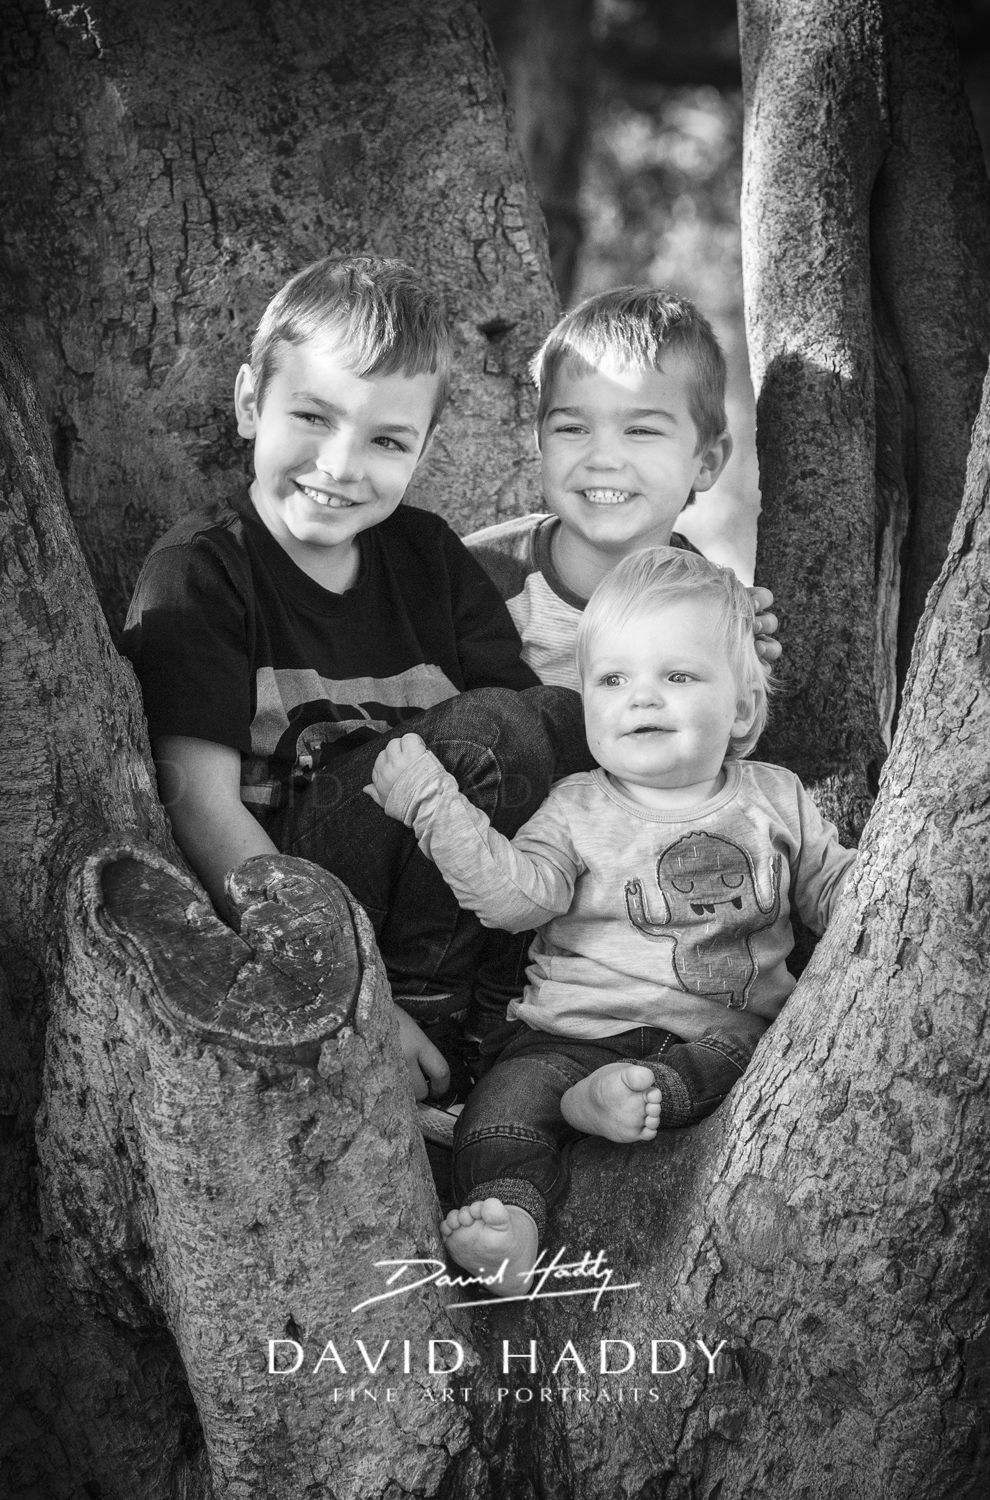 Trees are for climbing - by Adelaide childrens photographer David Haddy